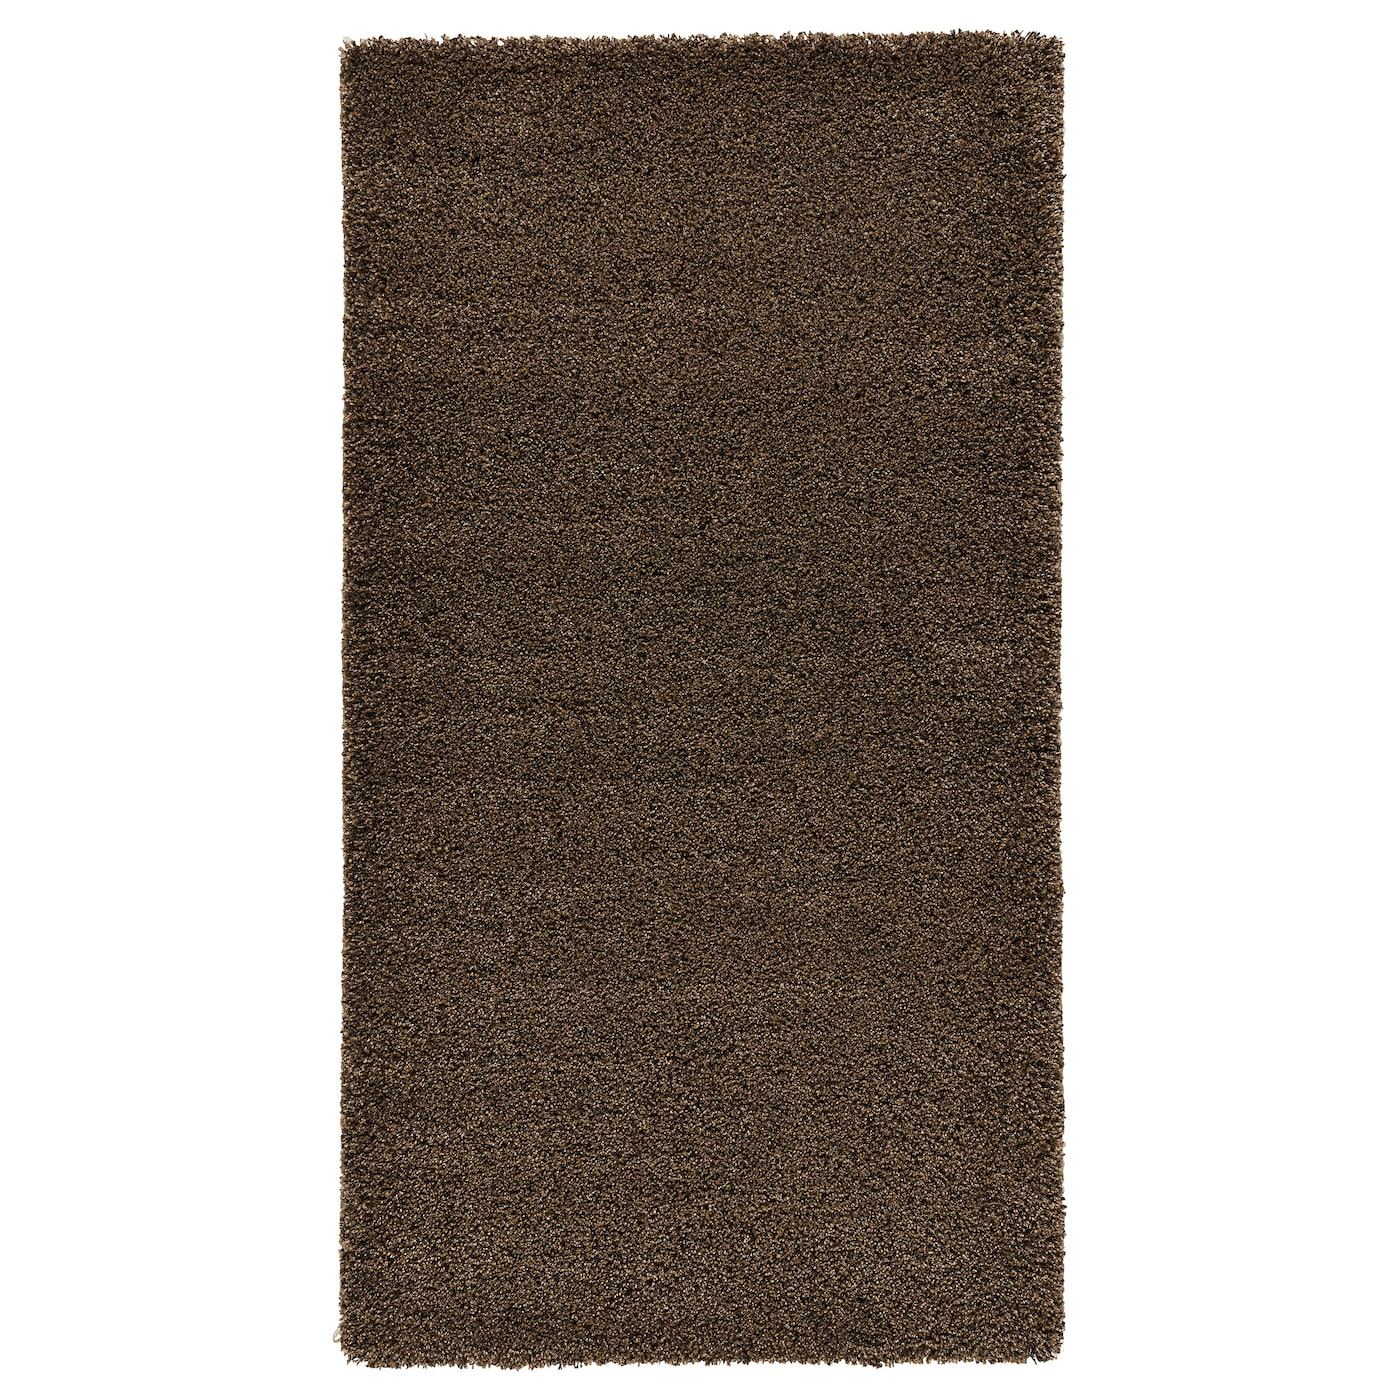 Ikea Adum Rug Light Brown Pink: ÅDUM Rug, High Pile Light Brown 80 X 150 Cm